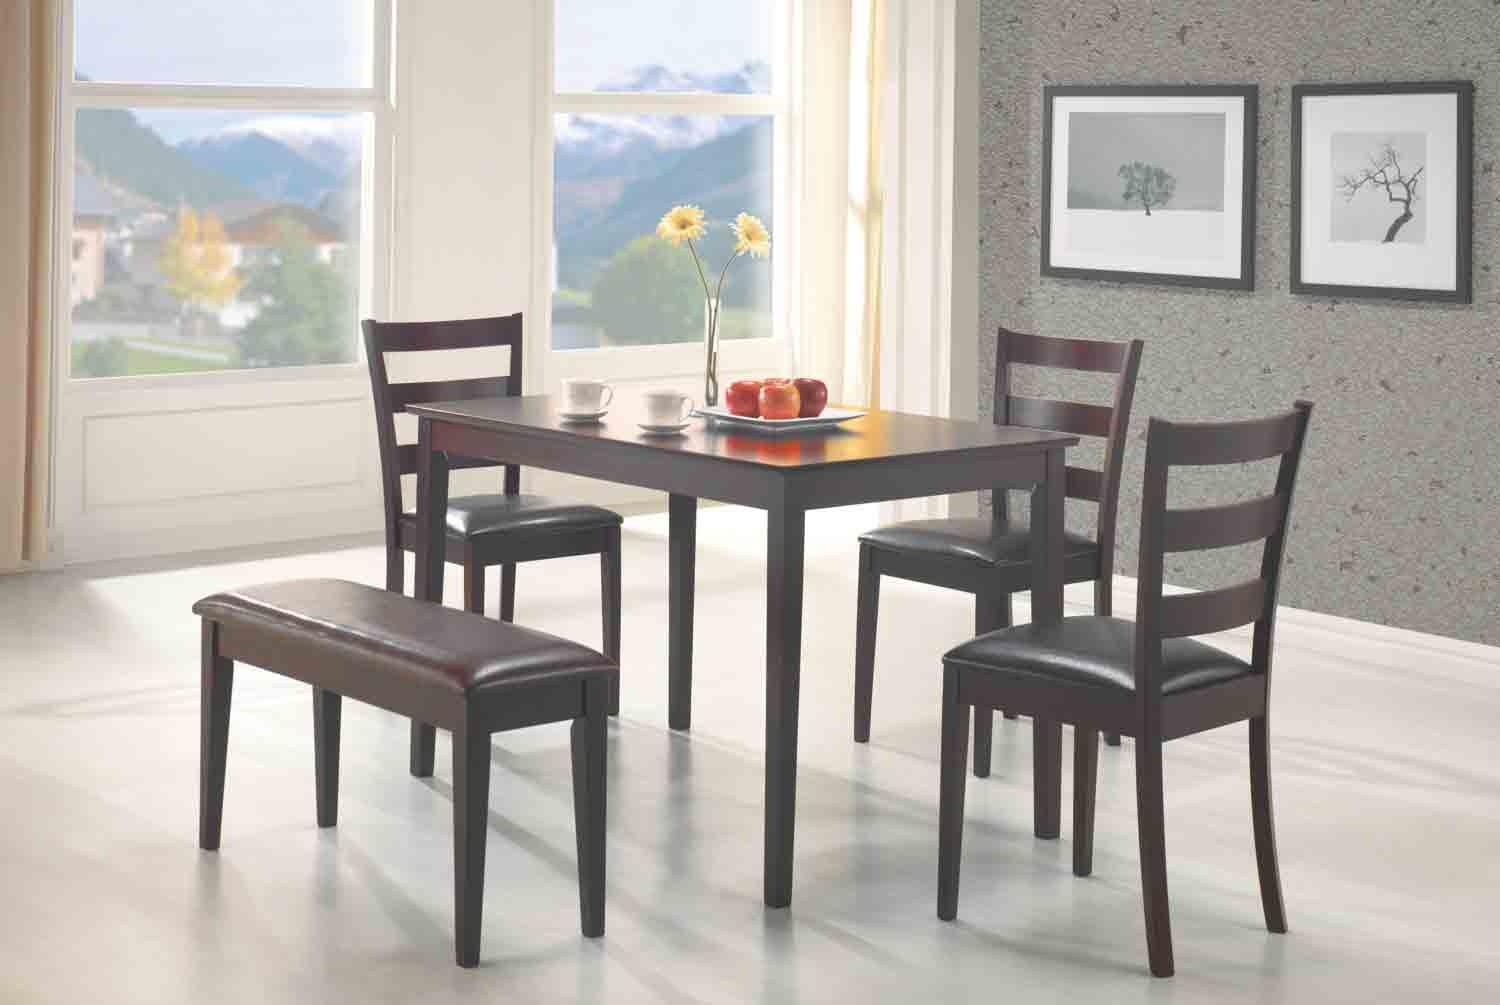 5 PCS Taraval Dining Set Table 3 Chairs and Bench Furniture & 5 PCS Dining Set Table 3 Chairs and Bench DC Furniture